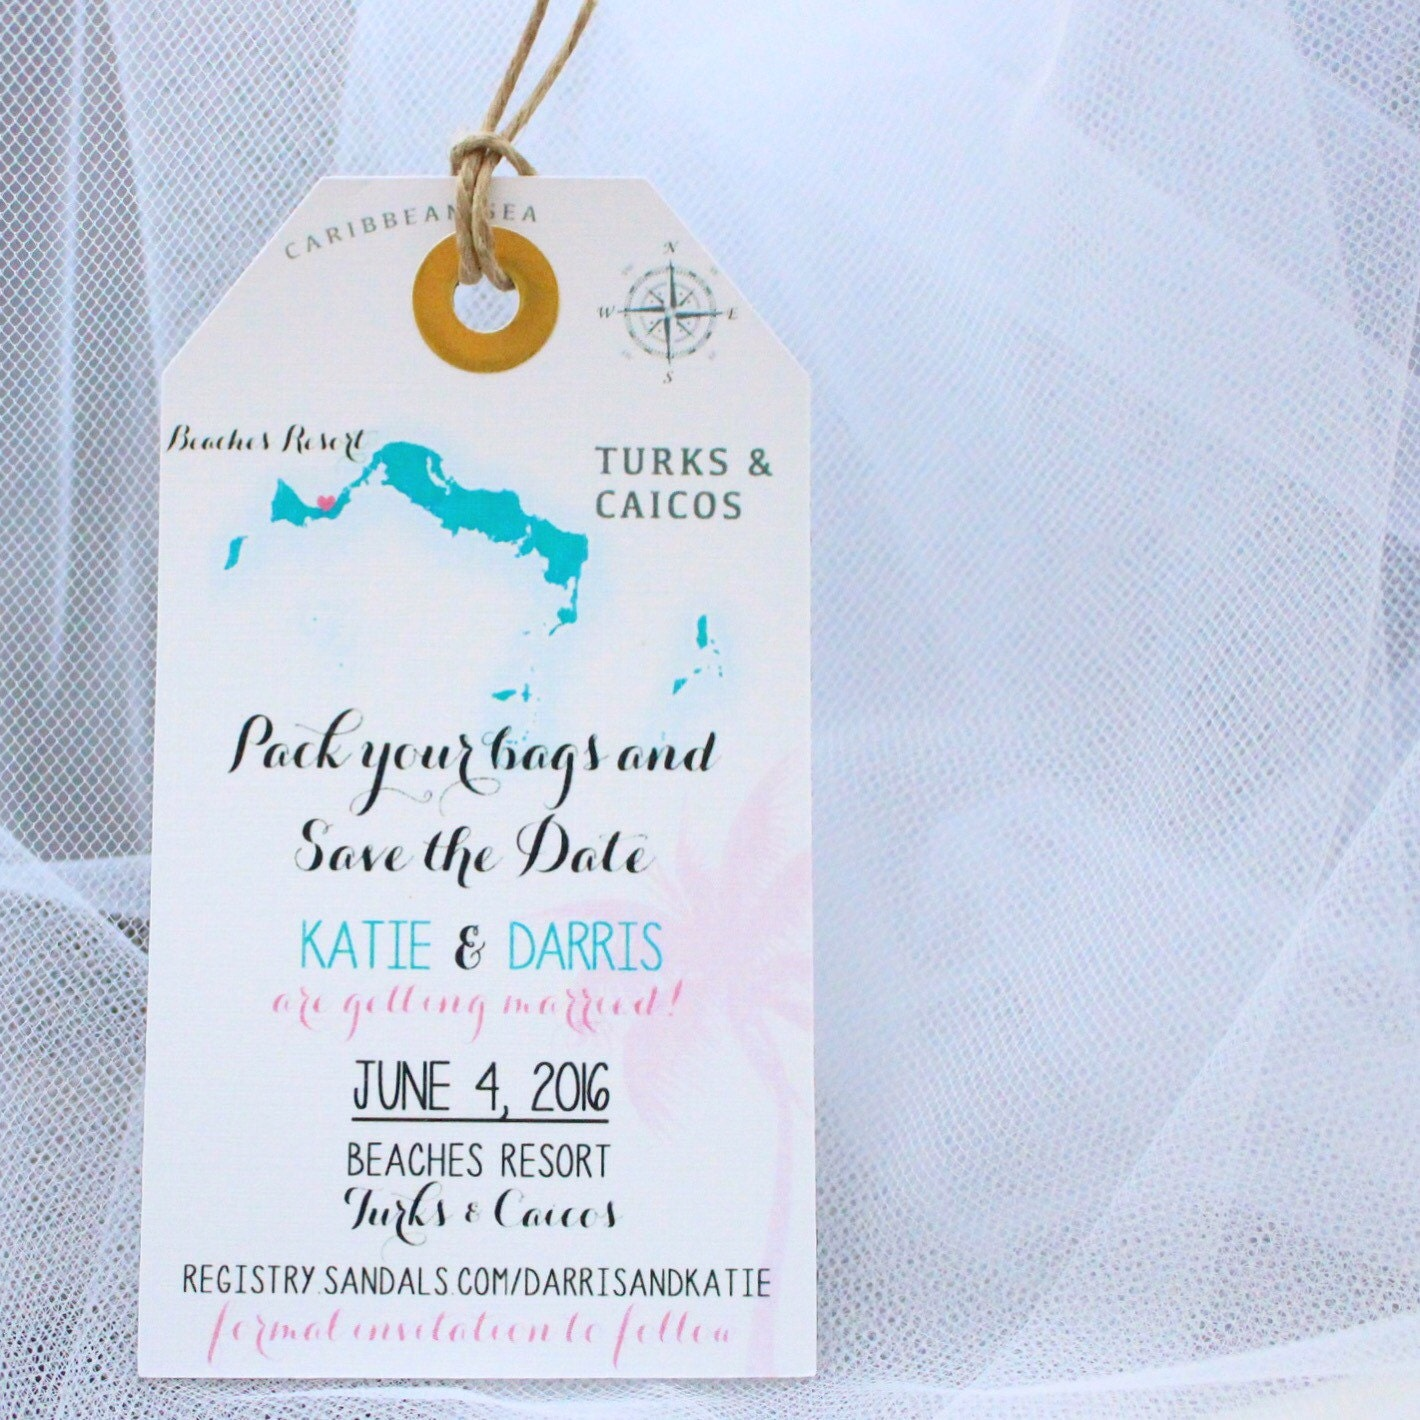 Wedding invitation Turks and Caicos Save the Date Luggage Tag